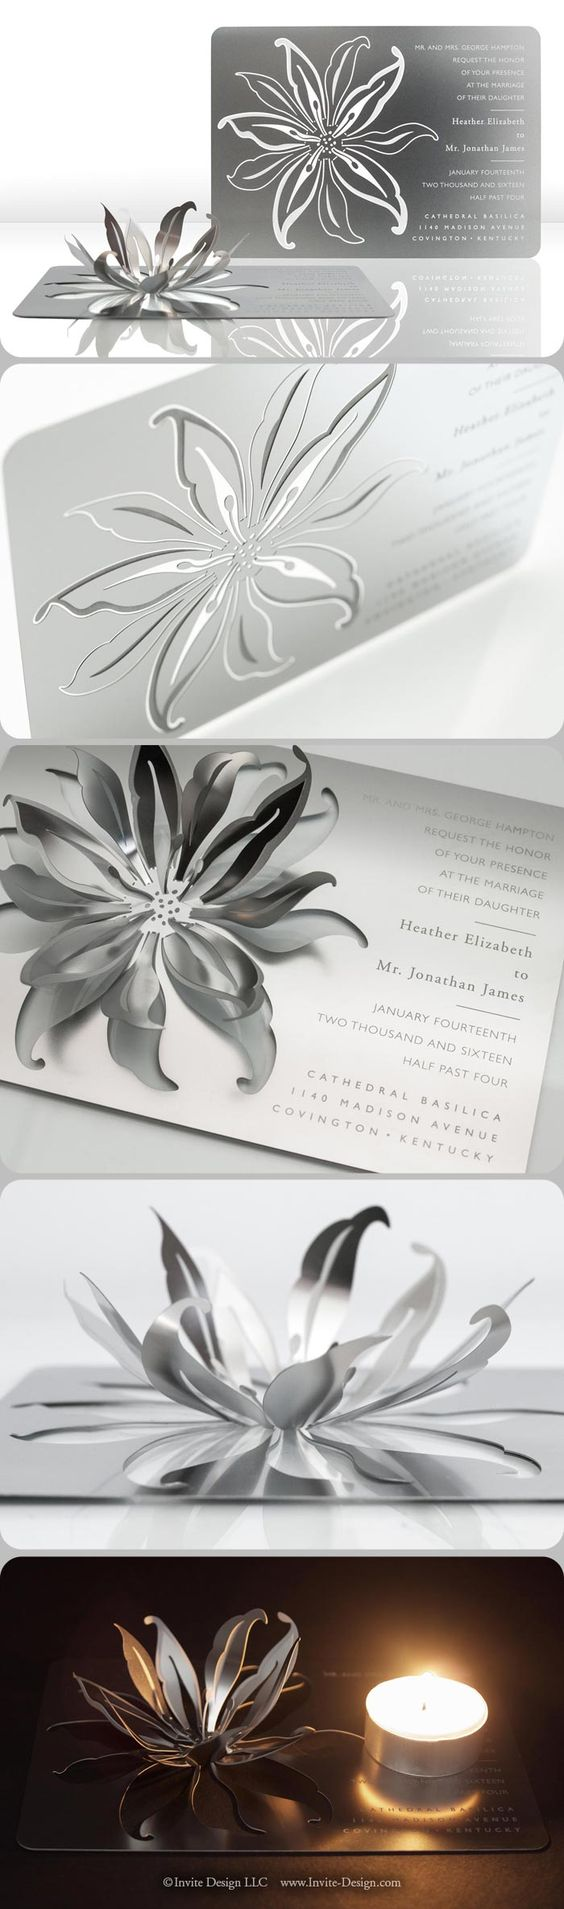 lily metal wedding invitation mails flat then transforms